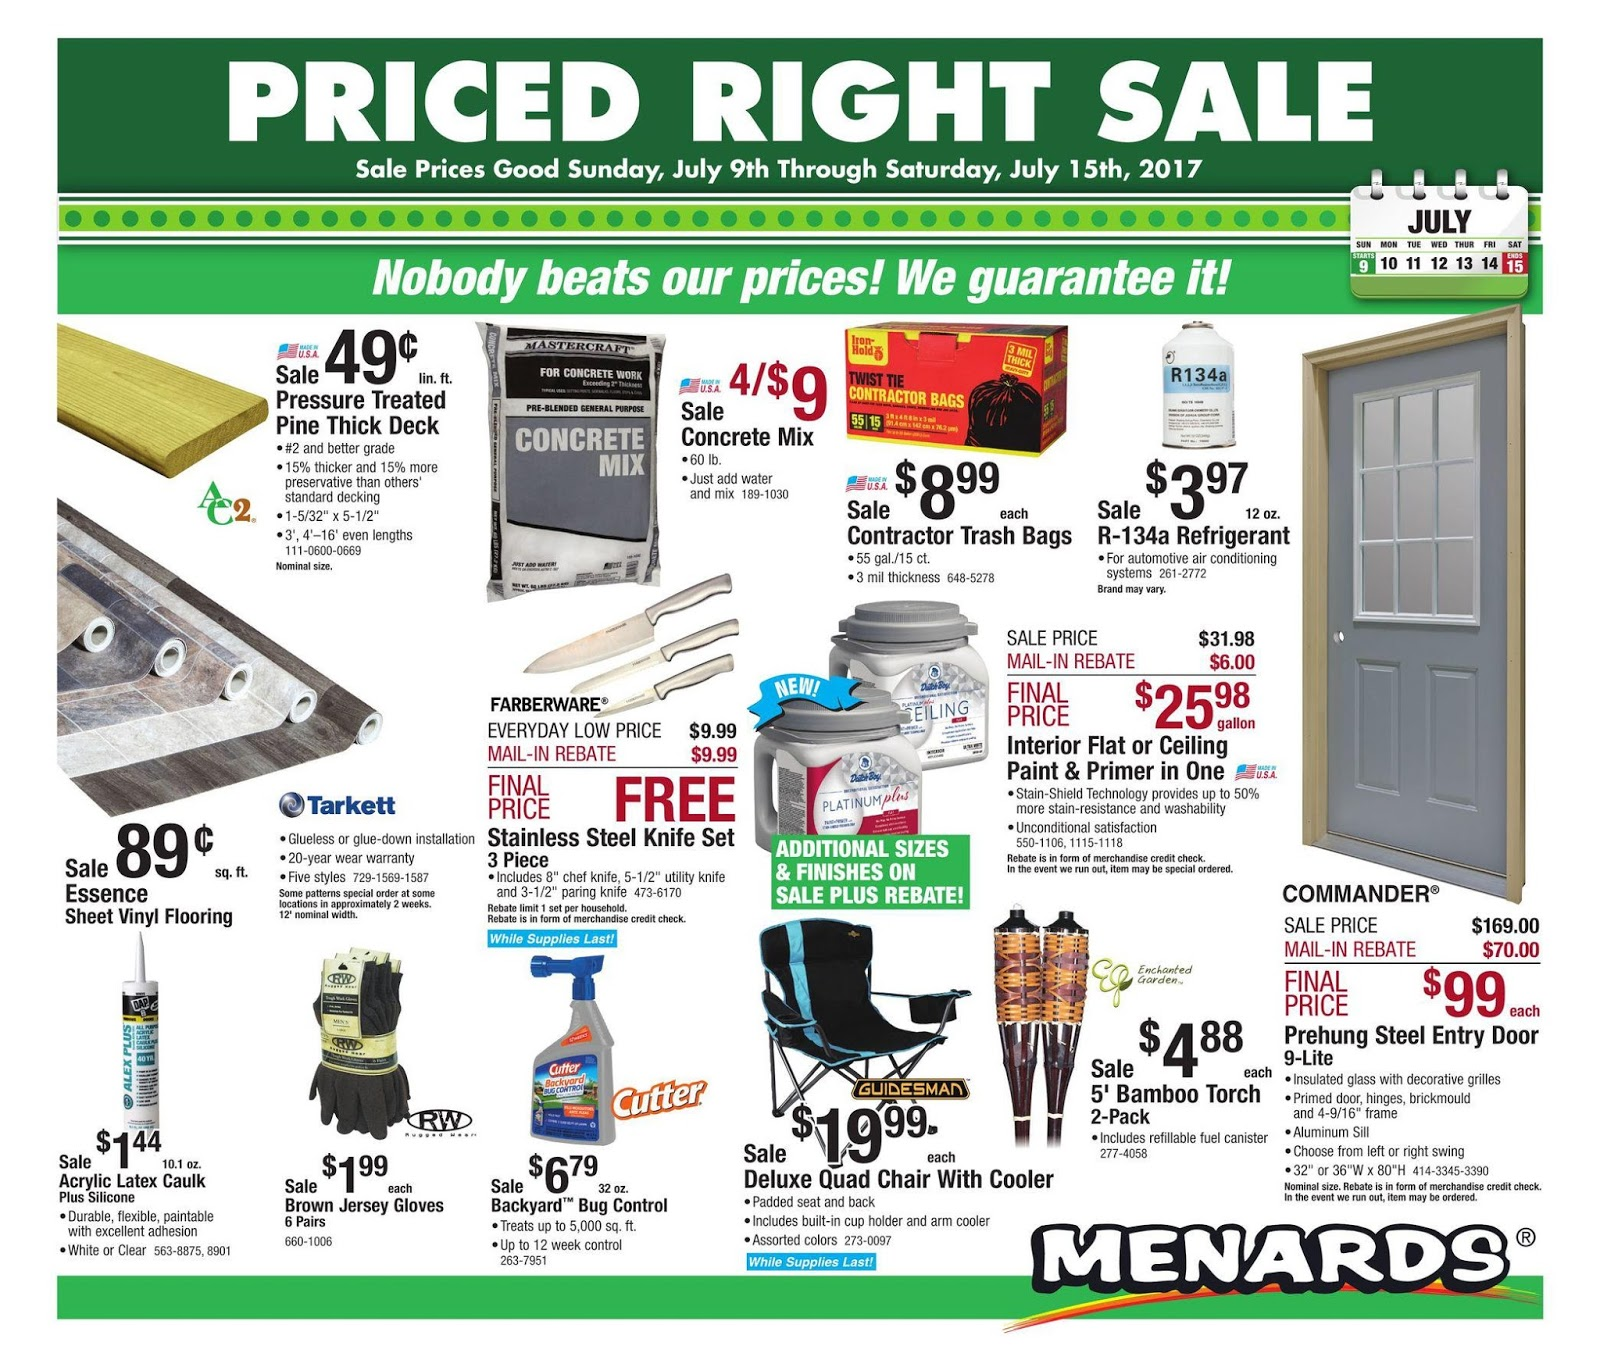 View the full Menards Weekly Ad for this week and the Menards Ad for next week! Use the left and right arrows to navigate through all of the pages of the Menards Weekly Flyer. Plan your shopping trip ahead of time and get your coupons ready with the early Menards Weekly Ad!